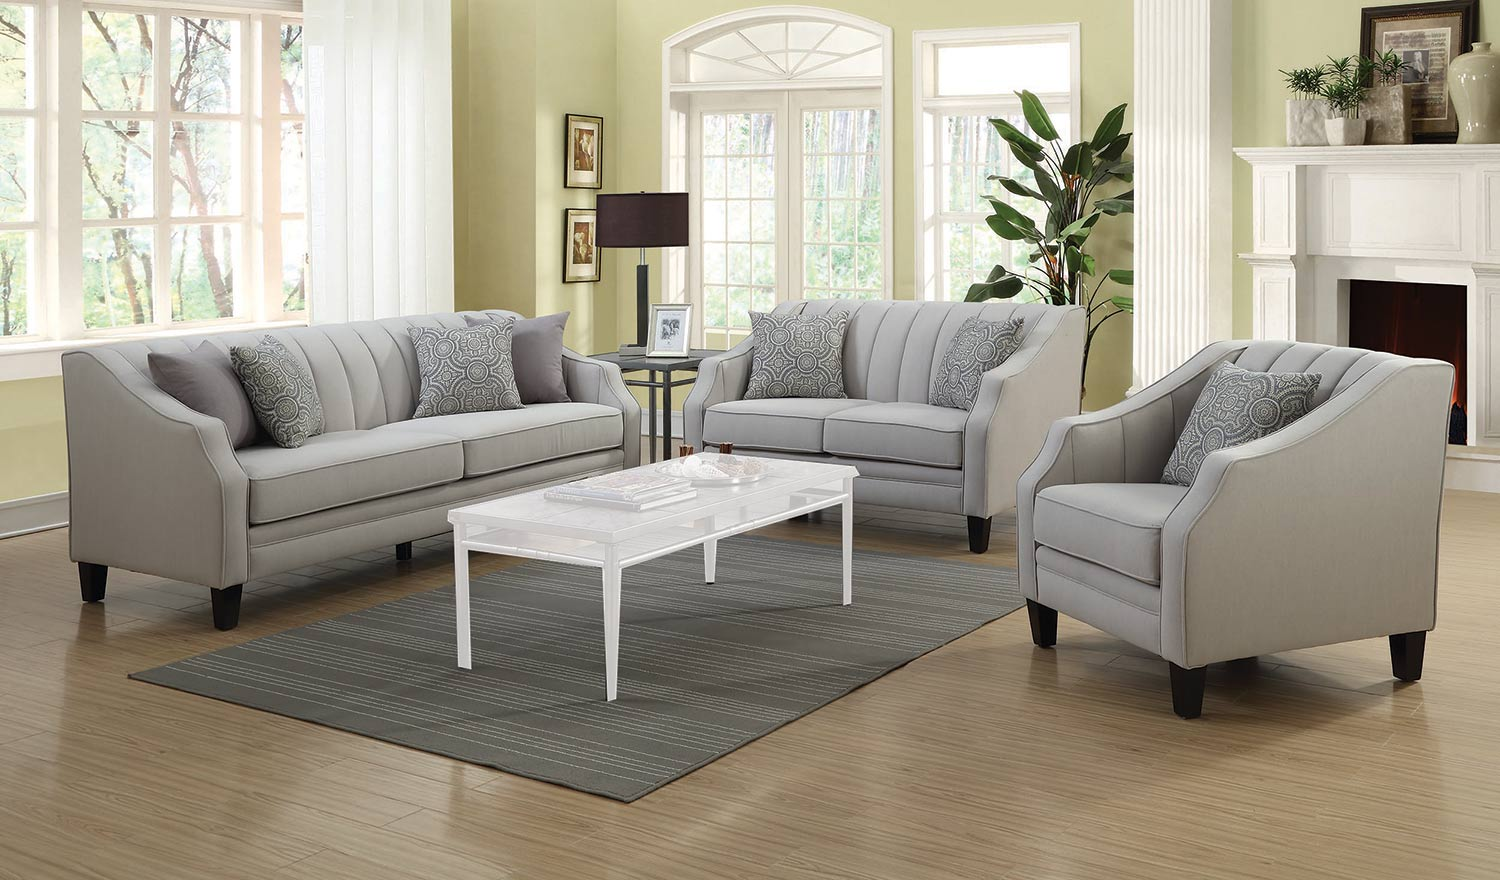 Sofa Set Grau Coaster Loxley Sofa Set Grey 551141 Sofa Set At